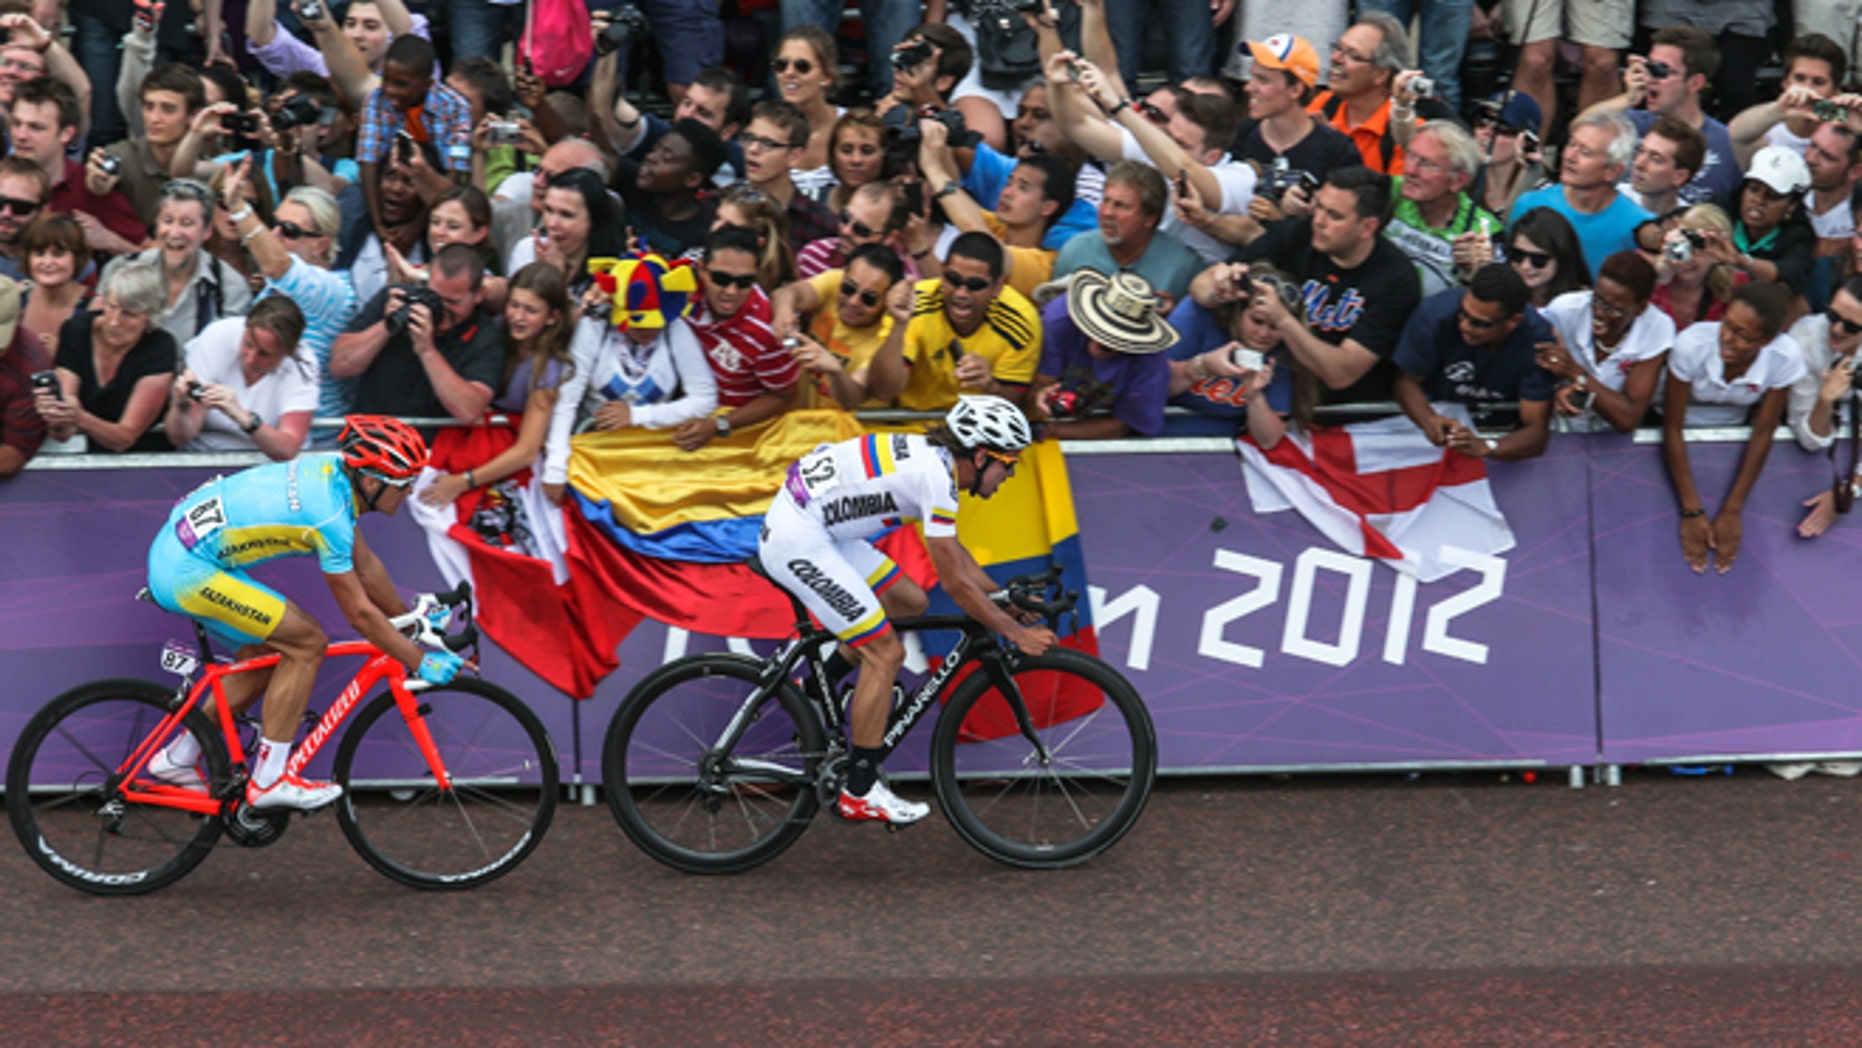 LONDON, ENGLAND - JULY 28: Alexandr Vinokurov of Kazakhstan shadows Rigoberto Uran Uran of Colombia on the mall ahead of winning  the Gold Medal in a sprint during the Men's Road Race Road Cycling on day 1 of the London 2012 Olympic Games on July 28, 2012 in London, England.(Photo by Daniel Berehulak/Getty Images)